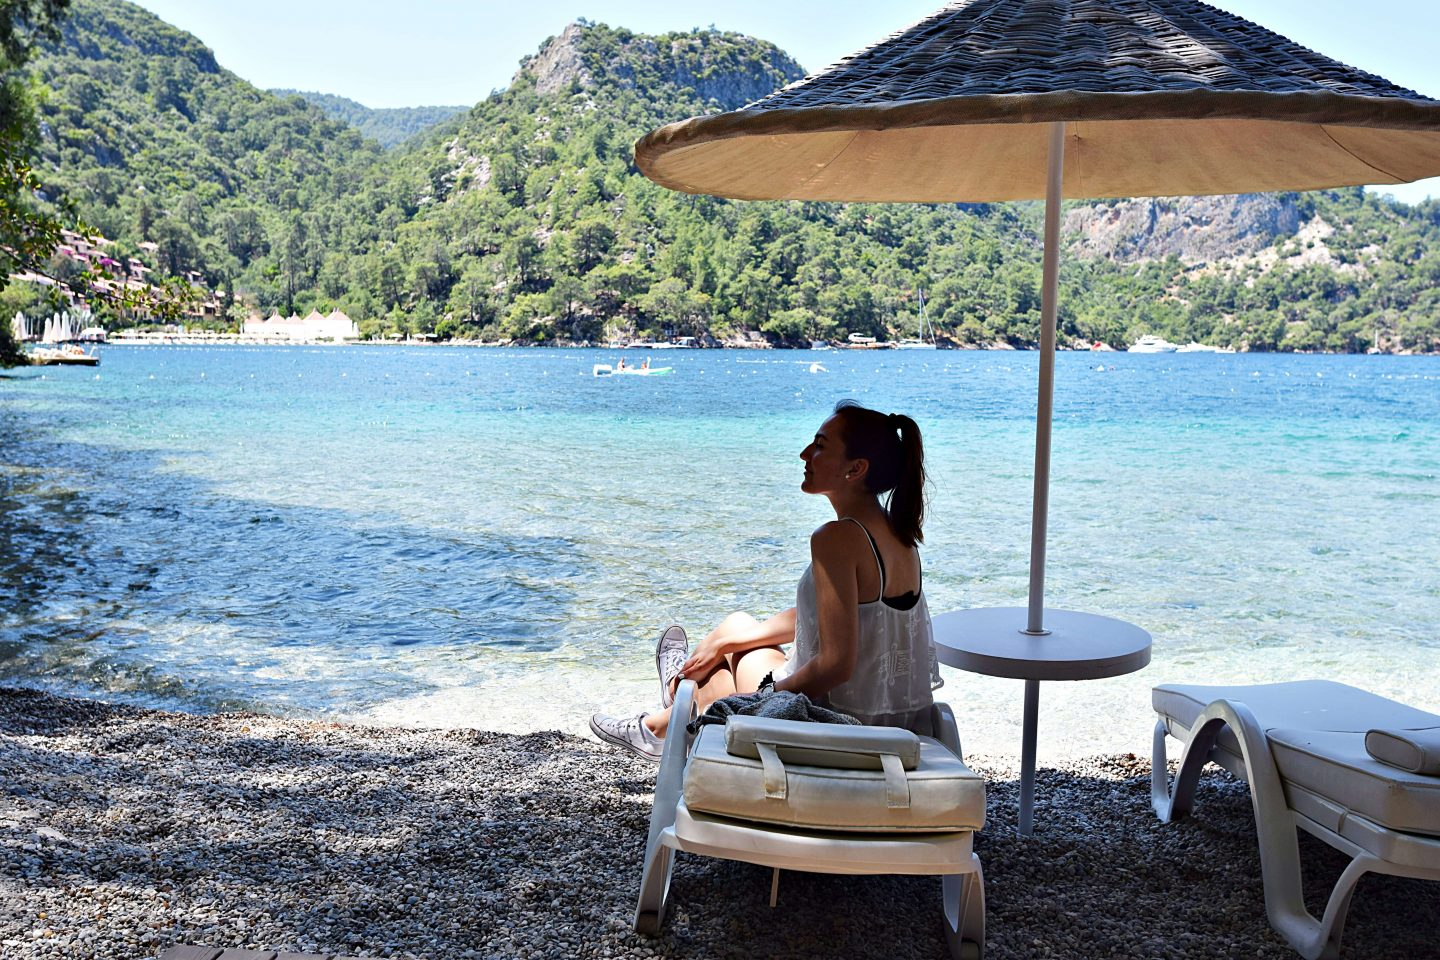 Hillside Beach Club Fethiye Turkey – 5 things I loved